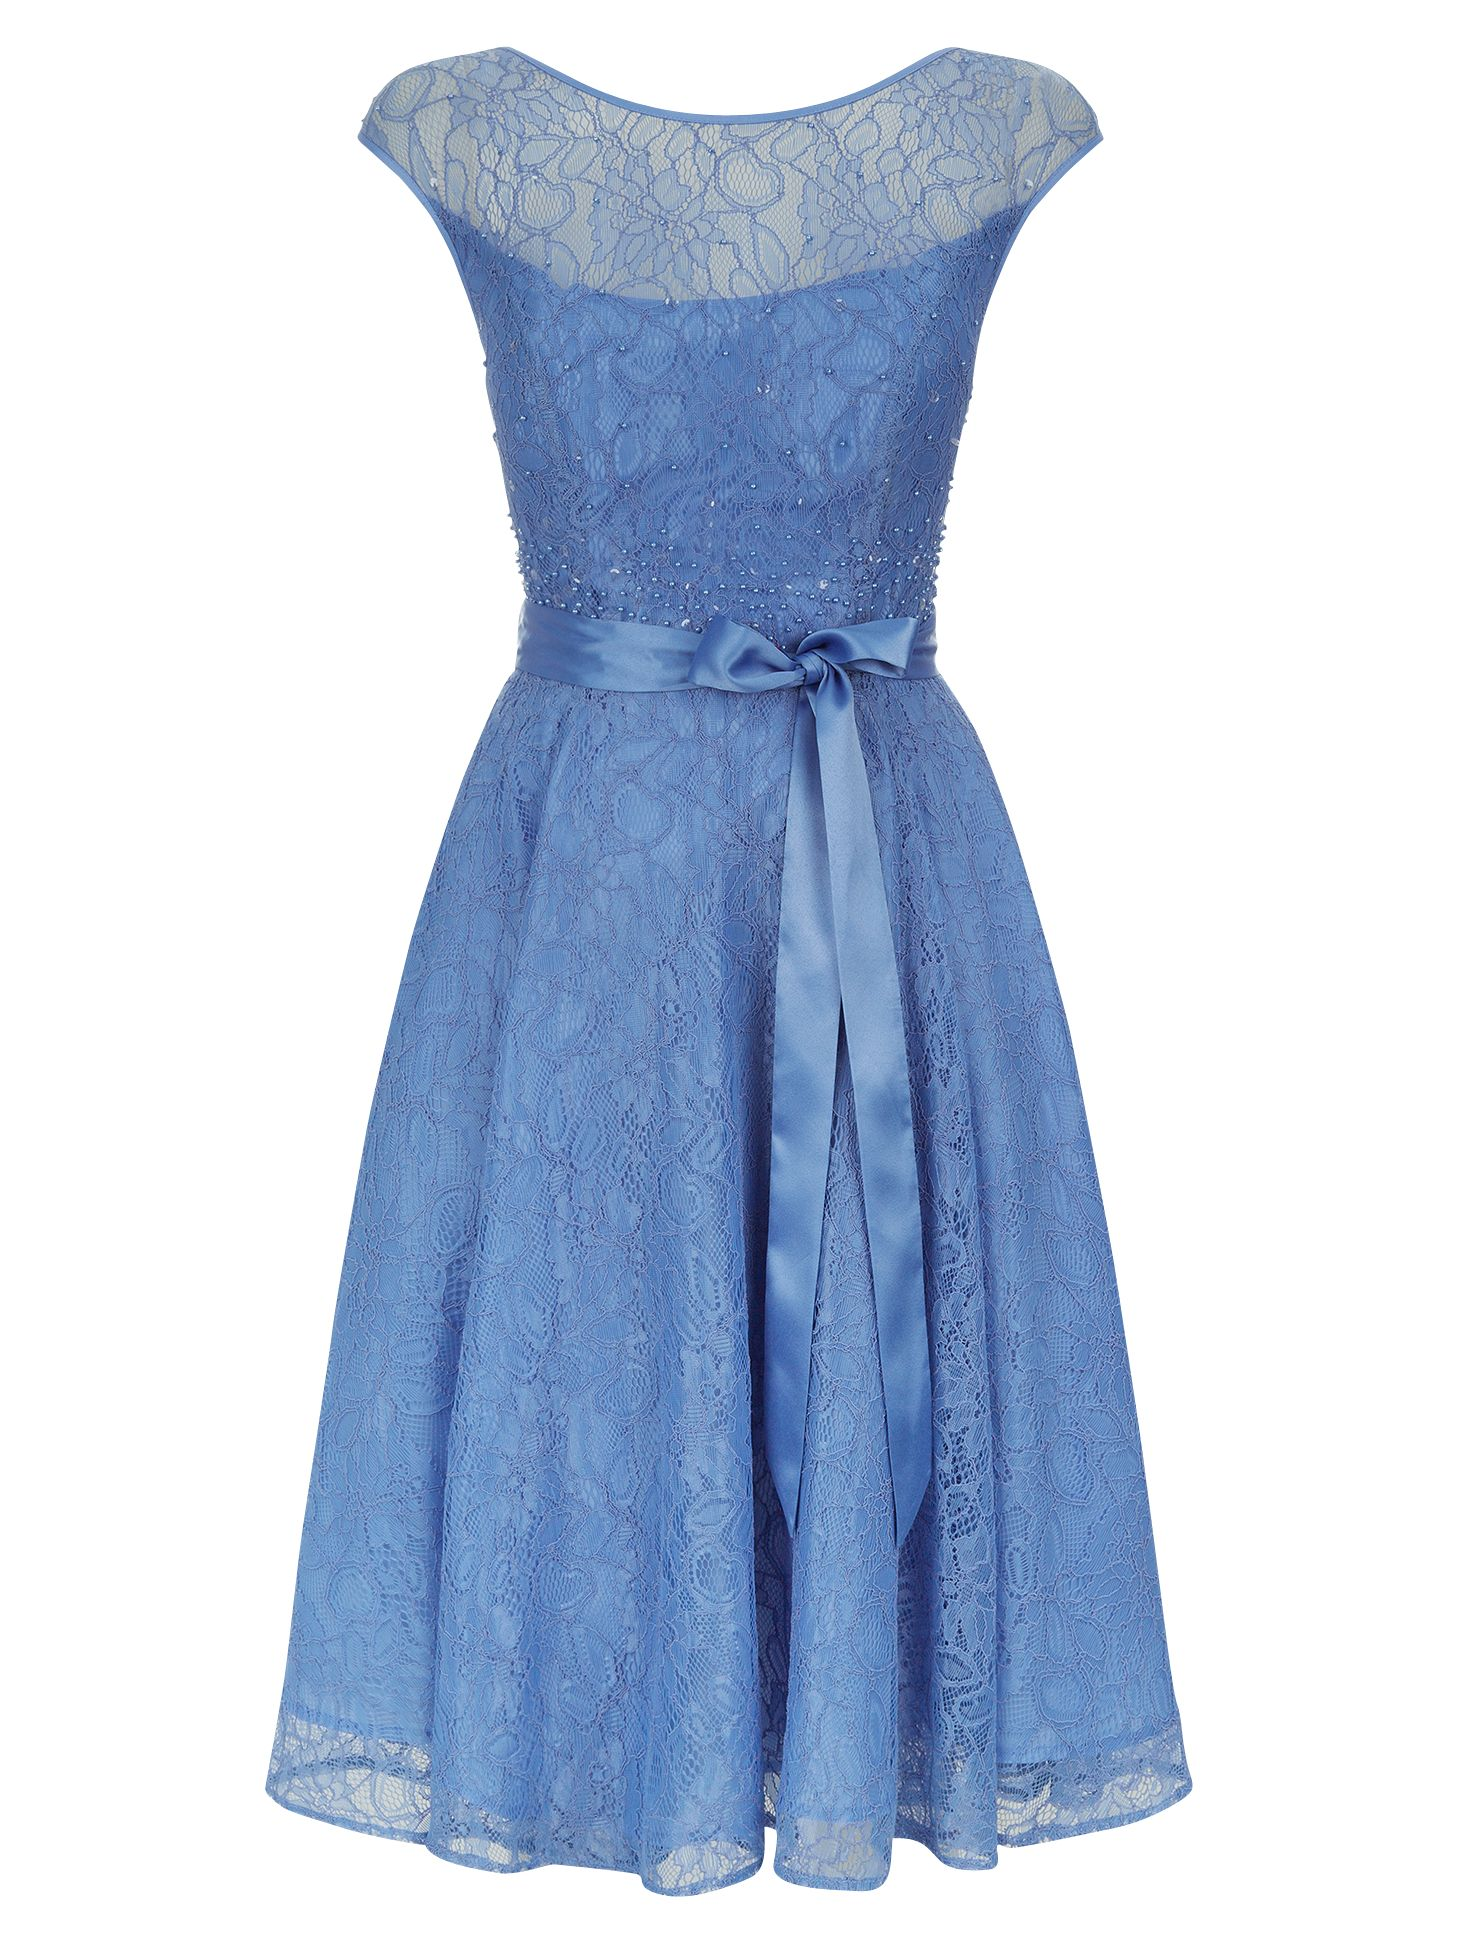 kaliko beaded lace prom dress light blue, kaliko, beaded, lace, prom, dress, light, blue, 16|14|12|18|20, women, plus size, womens dresses, gifts, wedding, wedding clothing, female guests, special offers, womenswear offers, womens dresses offers, latest reductions, adult bridesmaids, 1851101